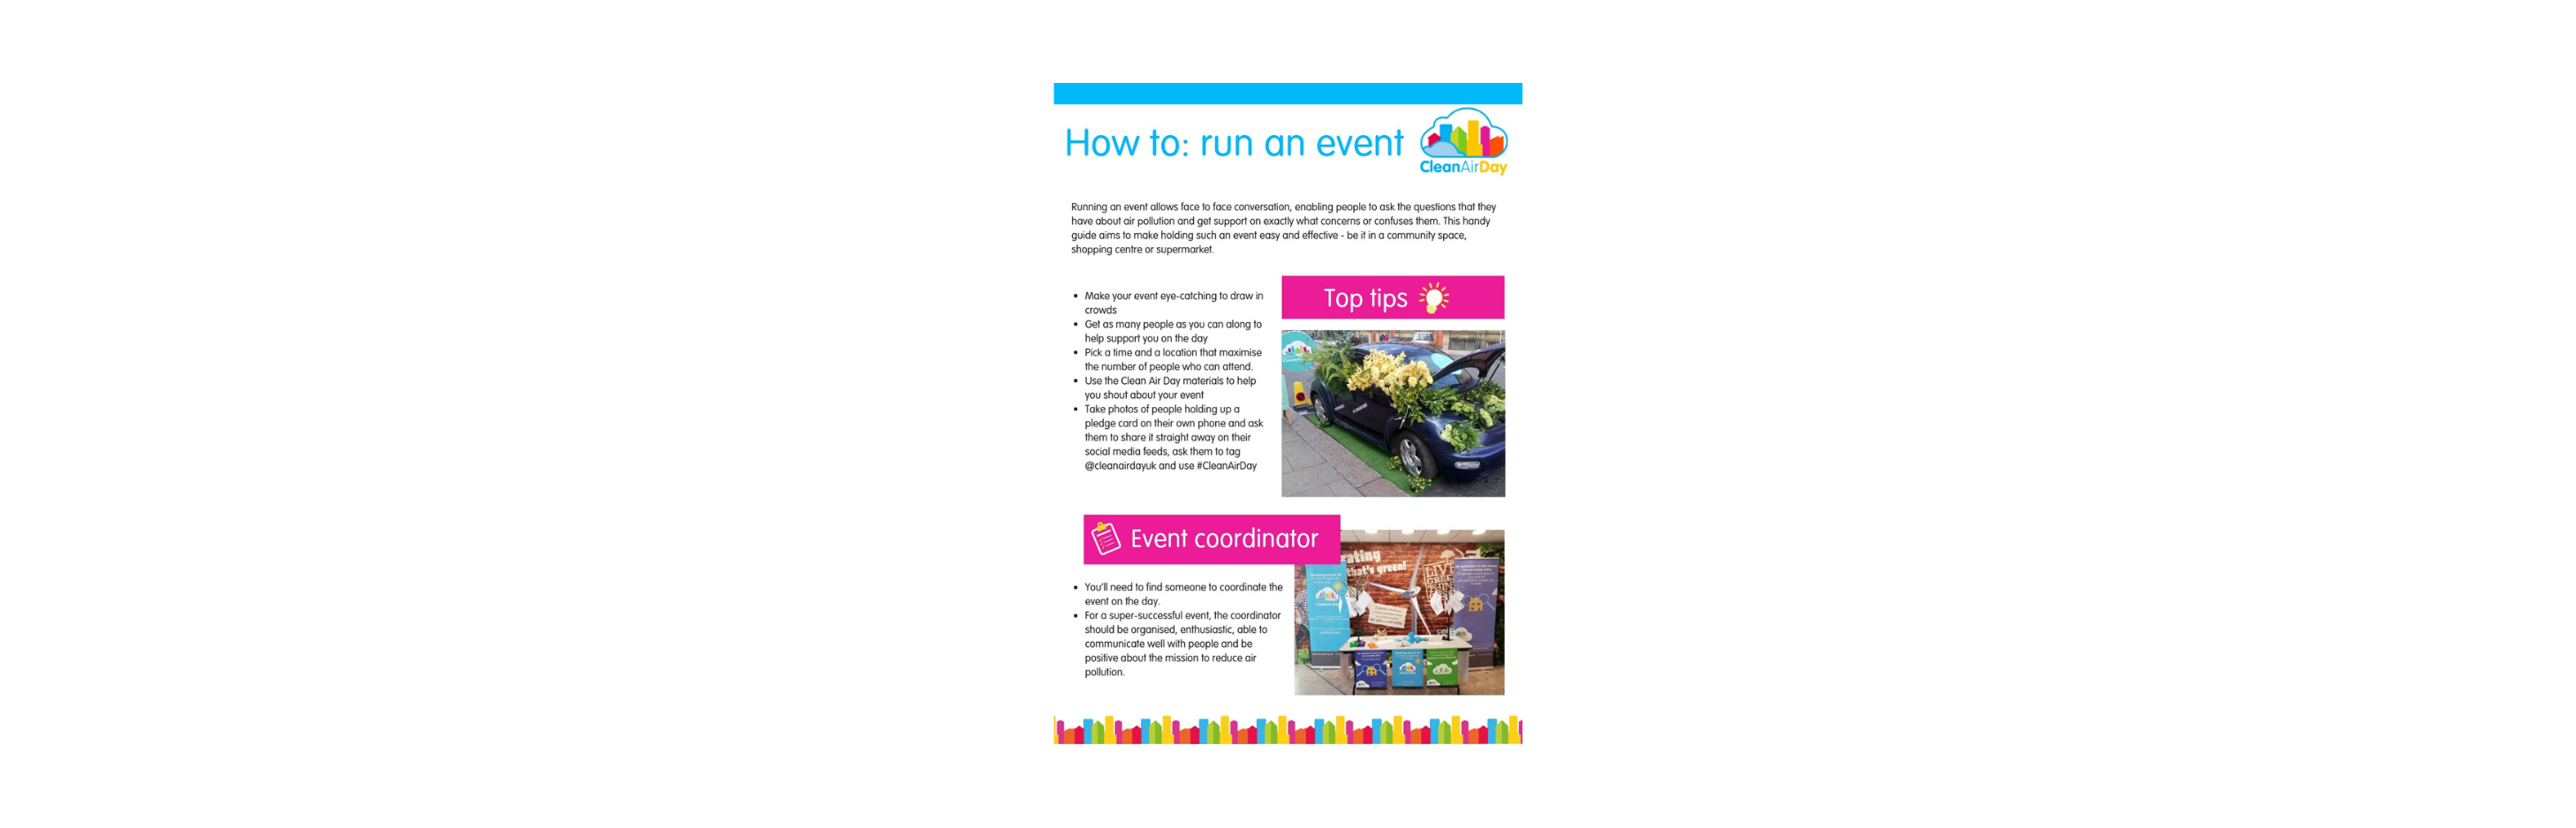 A thumbnail of the how to: run an event guide. It includes top tips and a section on event coordinators.